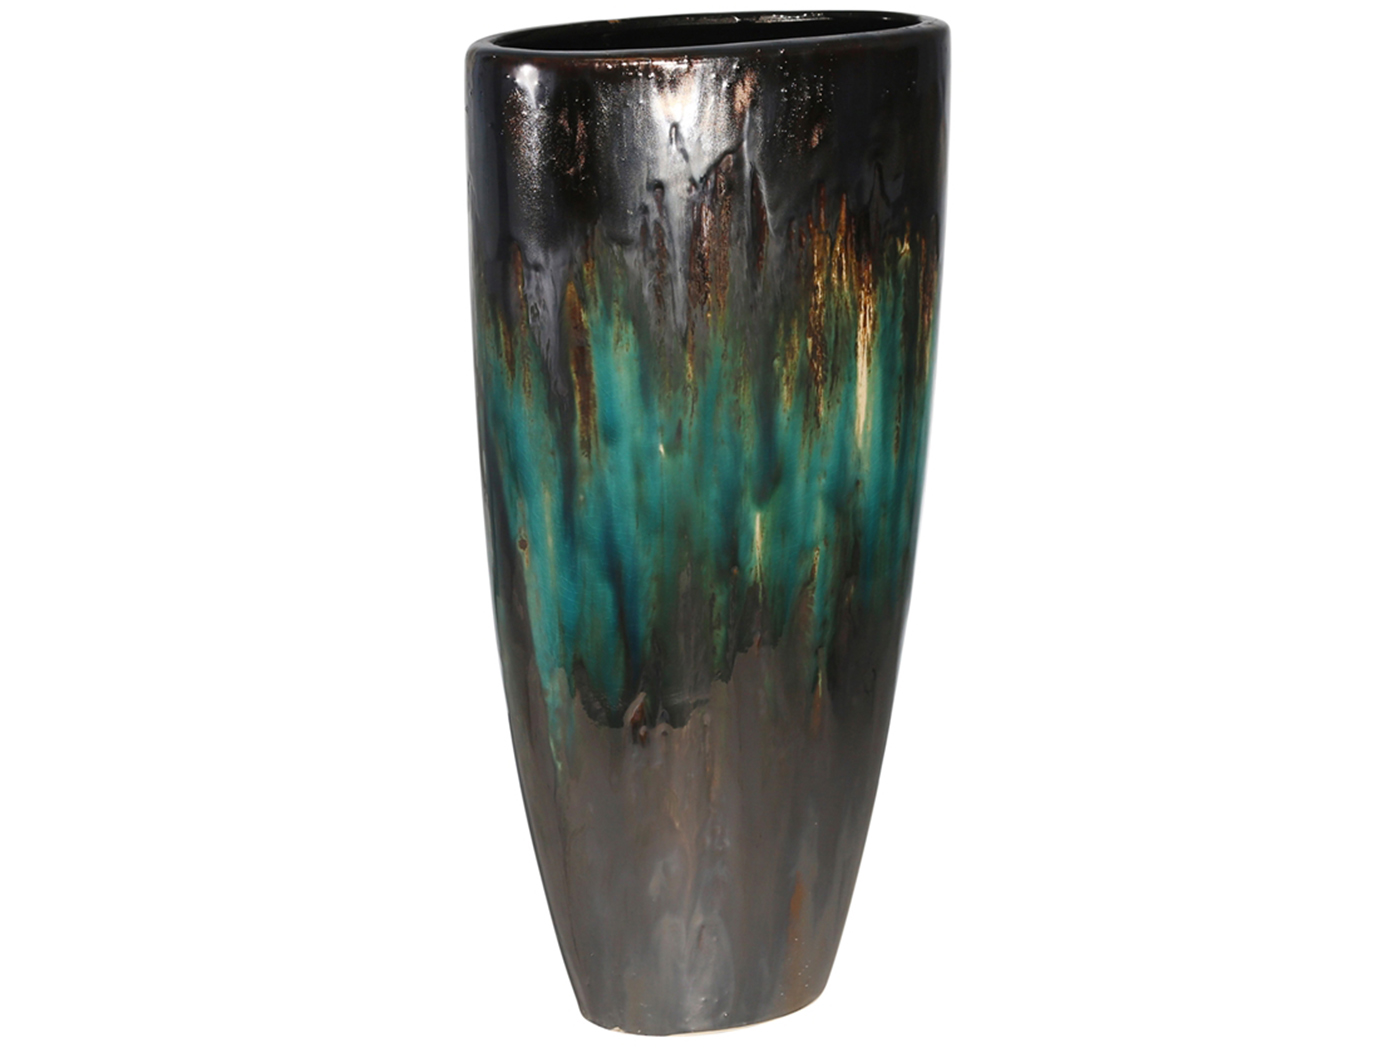 "Small Teal Ceramic Vase 8X4X16""H"